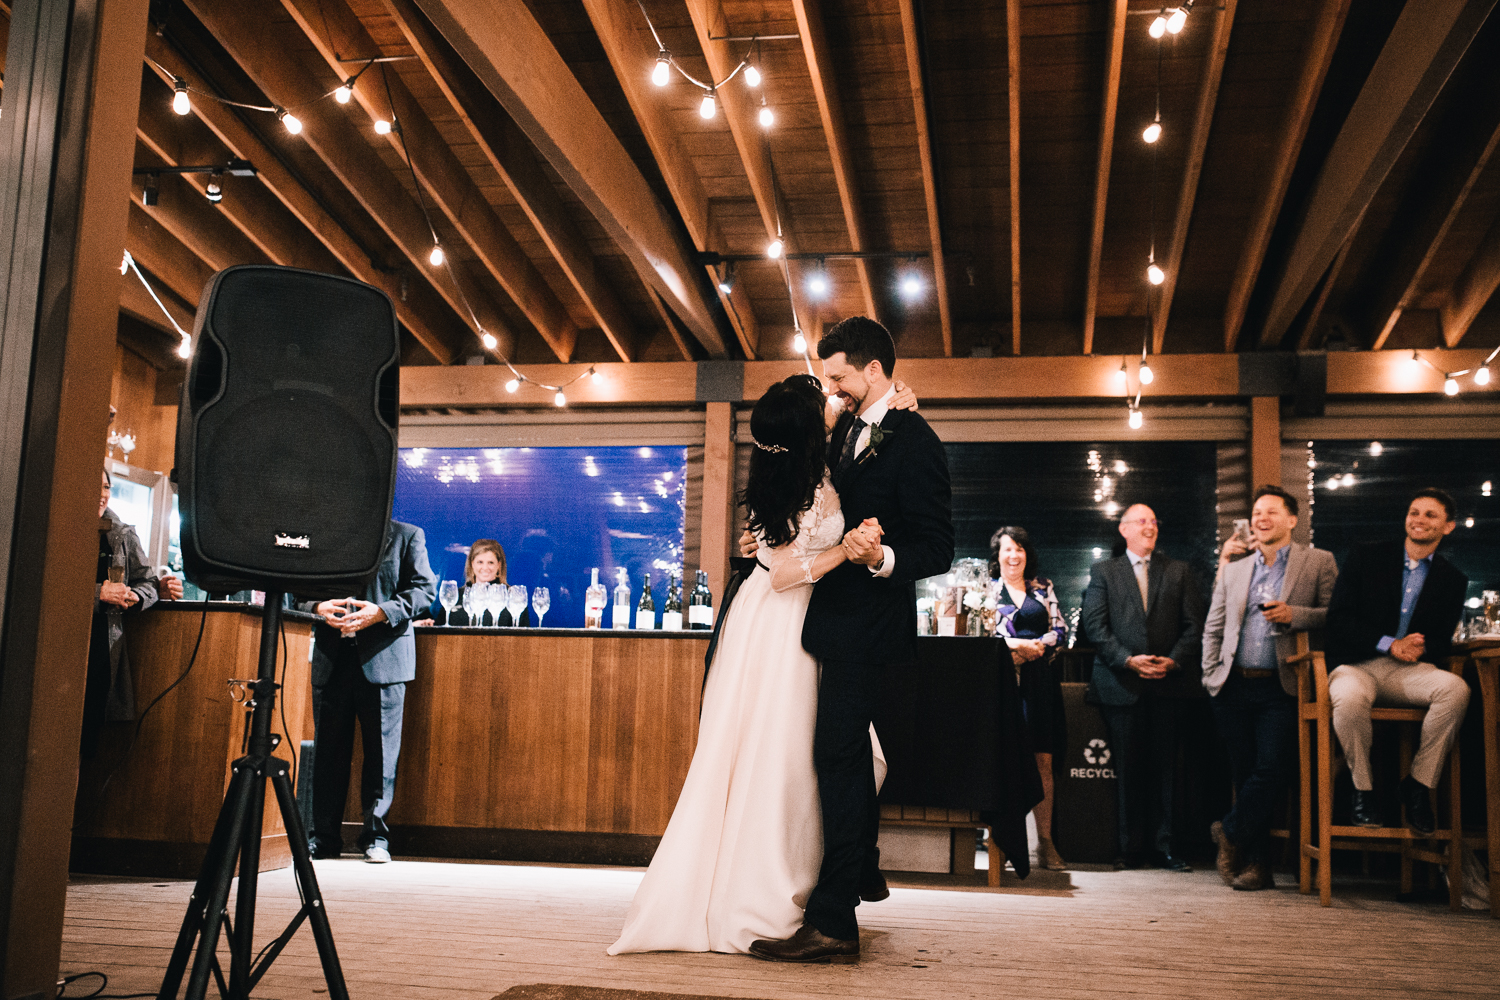 2019_05_ 182019.05.19 Lisa + Eddie South Bay Wedding Blog Photos Edited For Web 0147.jpg